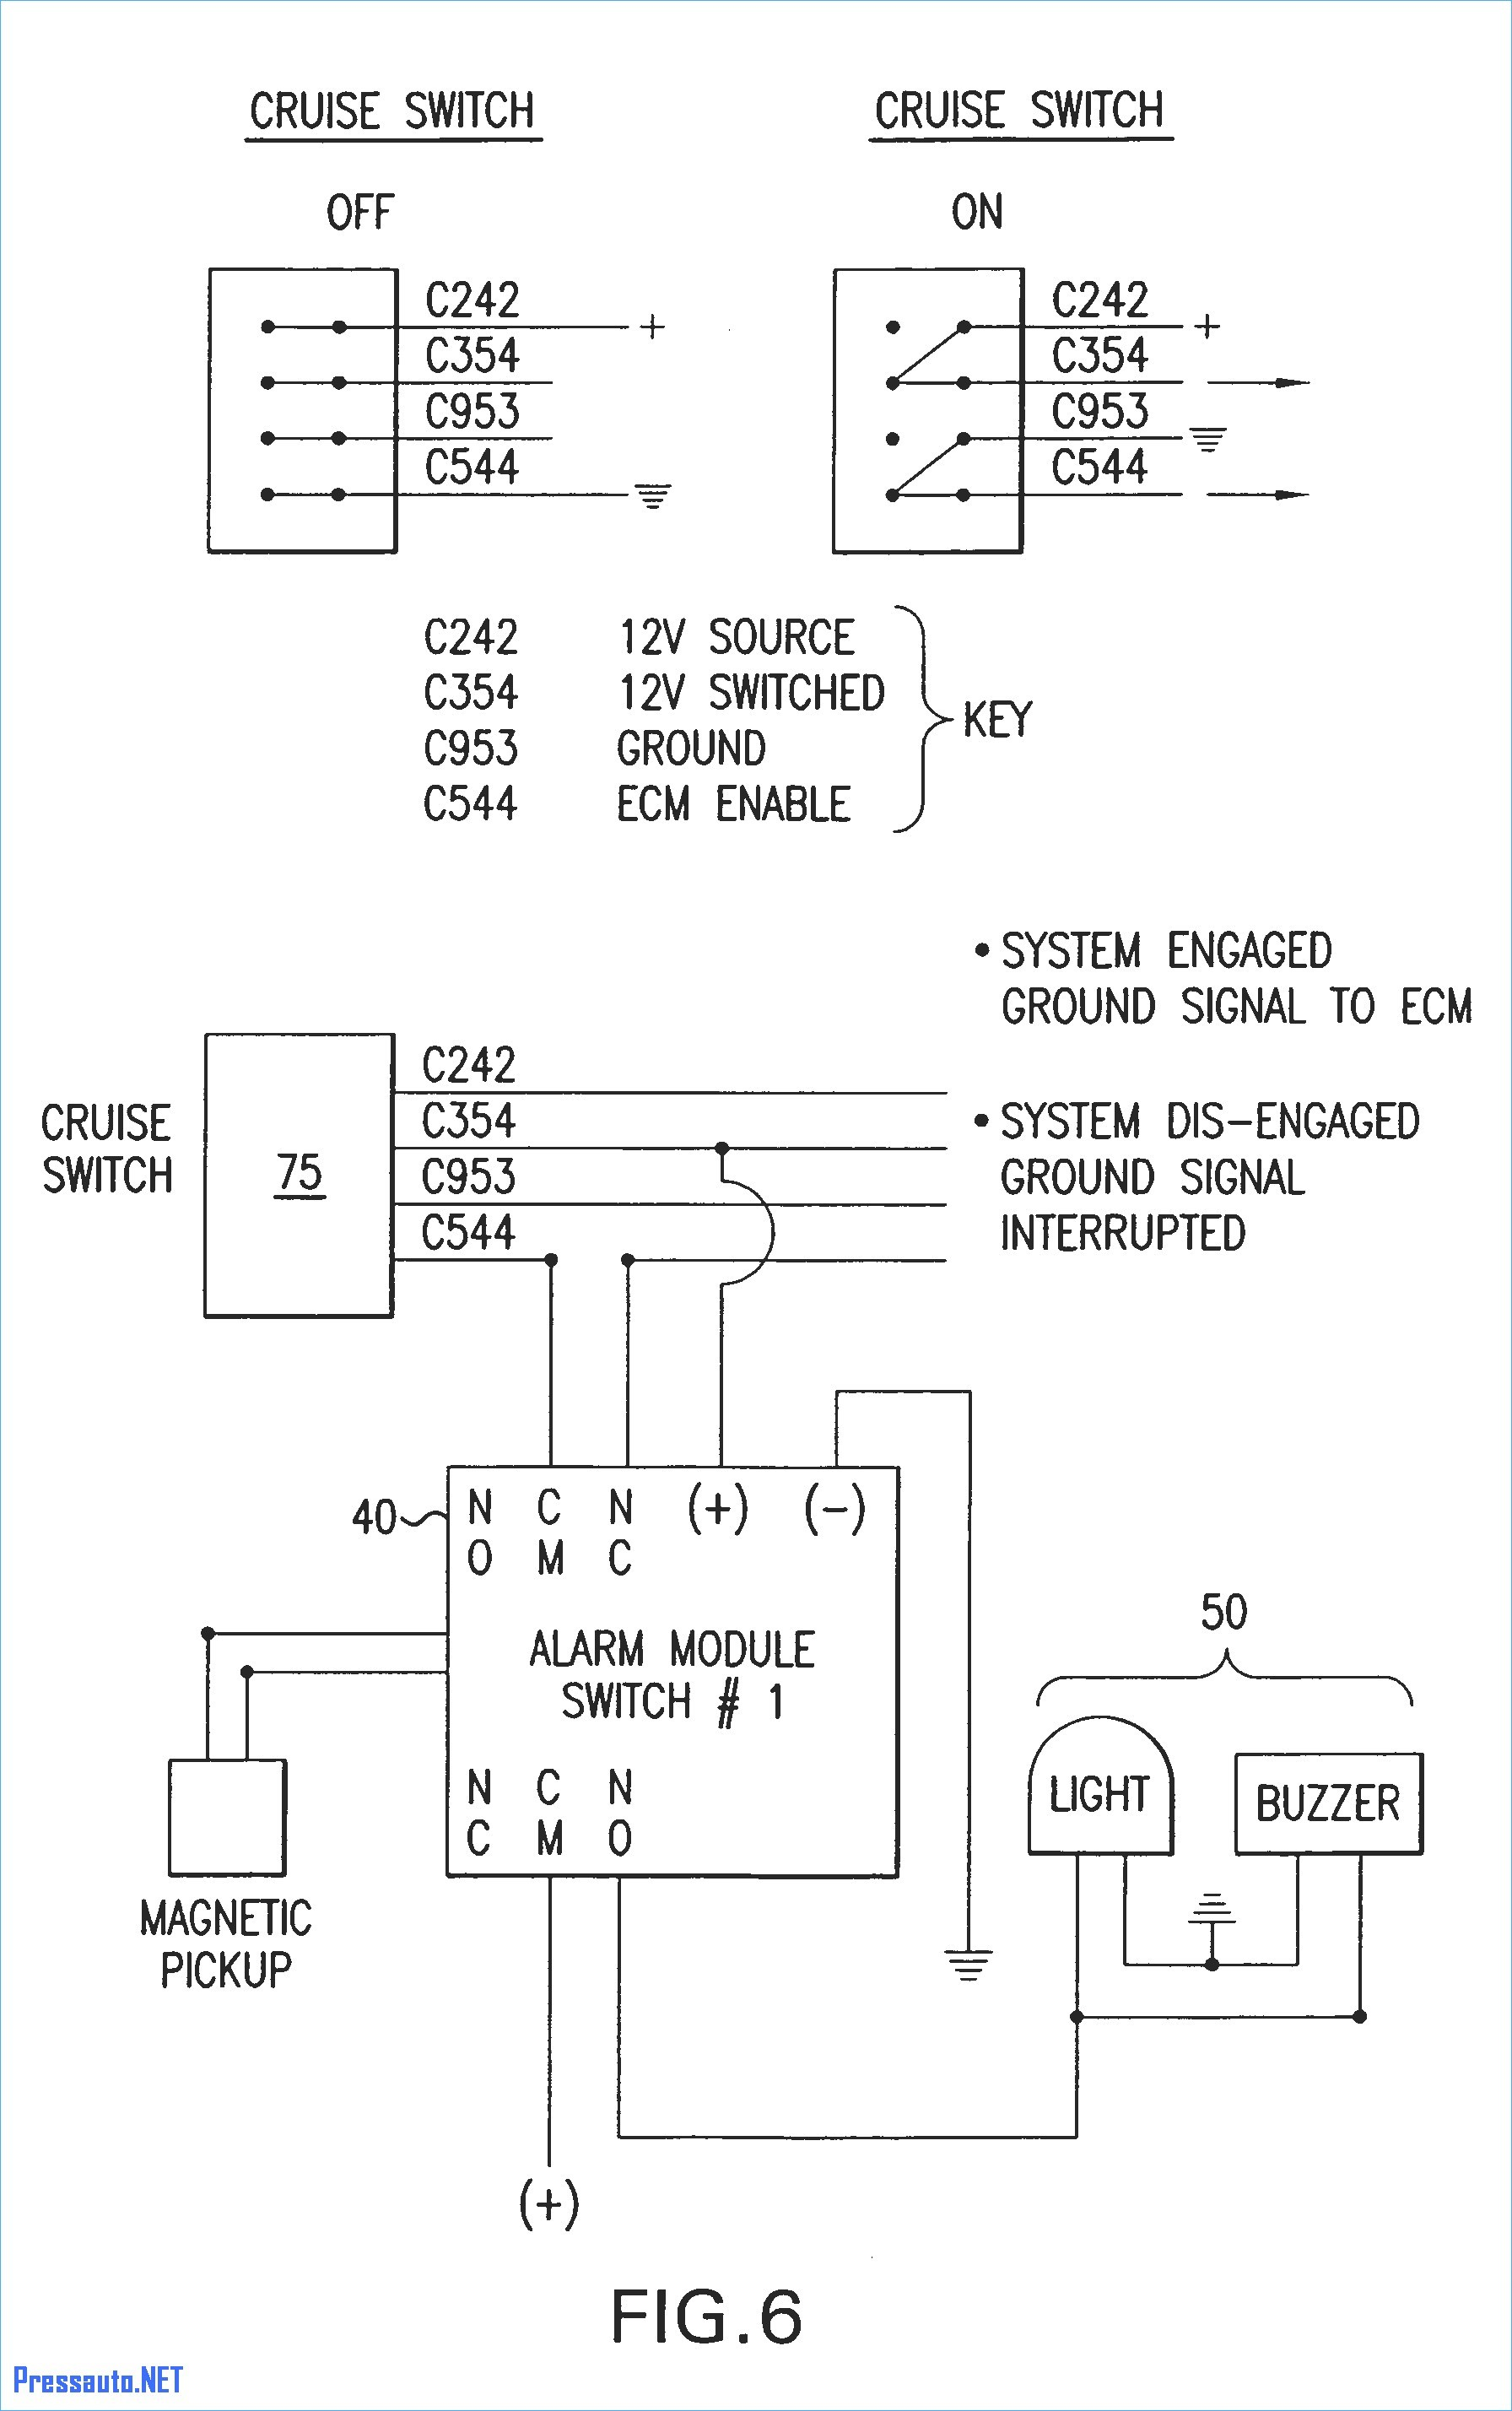 2004 Peterbilt 387 Wiring Diagram | Wiring Diagrams on peterbilt 379 electrical diagram, 99 peterbilt 379 wiring diagram, 2004 379 peterbilt wiring diagram, 2000 379 peterbilt fan belt, 2005 peterbilt 379 wiring diagram, peterbilt 379 air diagram, 2003 379 peterbilt wiring diagram, 2000 379 peterbilt dimensions, 2006 379 peterbilt wiring diagram, detroit series 60 ecm wiring diagram, 2006 kenworth fuse panel diagram, pete 379 wiring diagram, cat 3406e ecm wiring diagram, 98 peterbilt 379 wiring diagram, 2000 polaris sportsman 500 wiring diagram, peterbilt 379 light diagram, peterbilt transmission diagram, 97 peterbilt 379 wiring diagram, peterbilt 379 ac diagram, basic headlight wiring diagram,